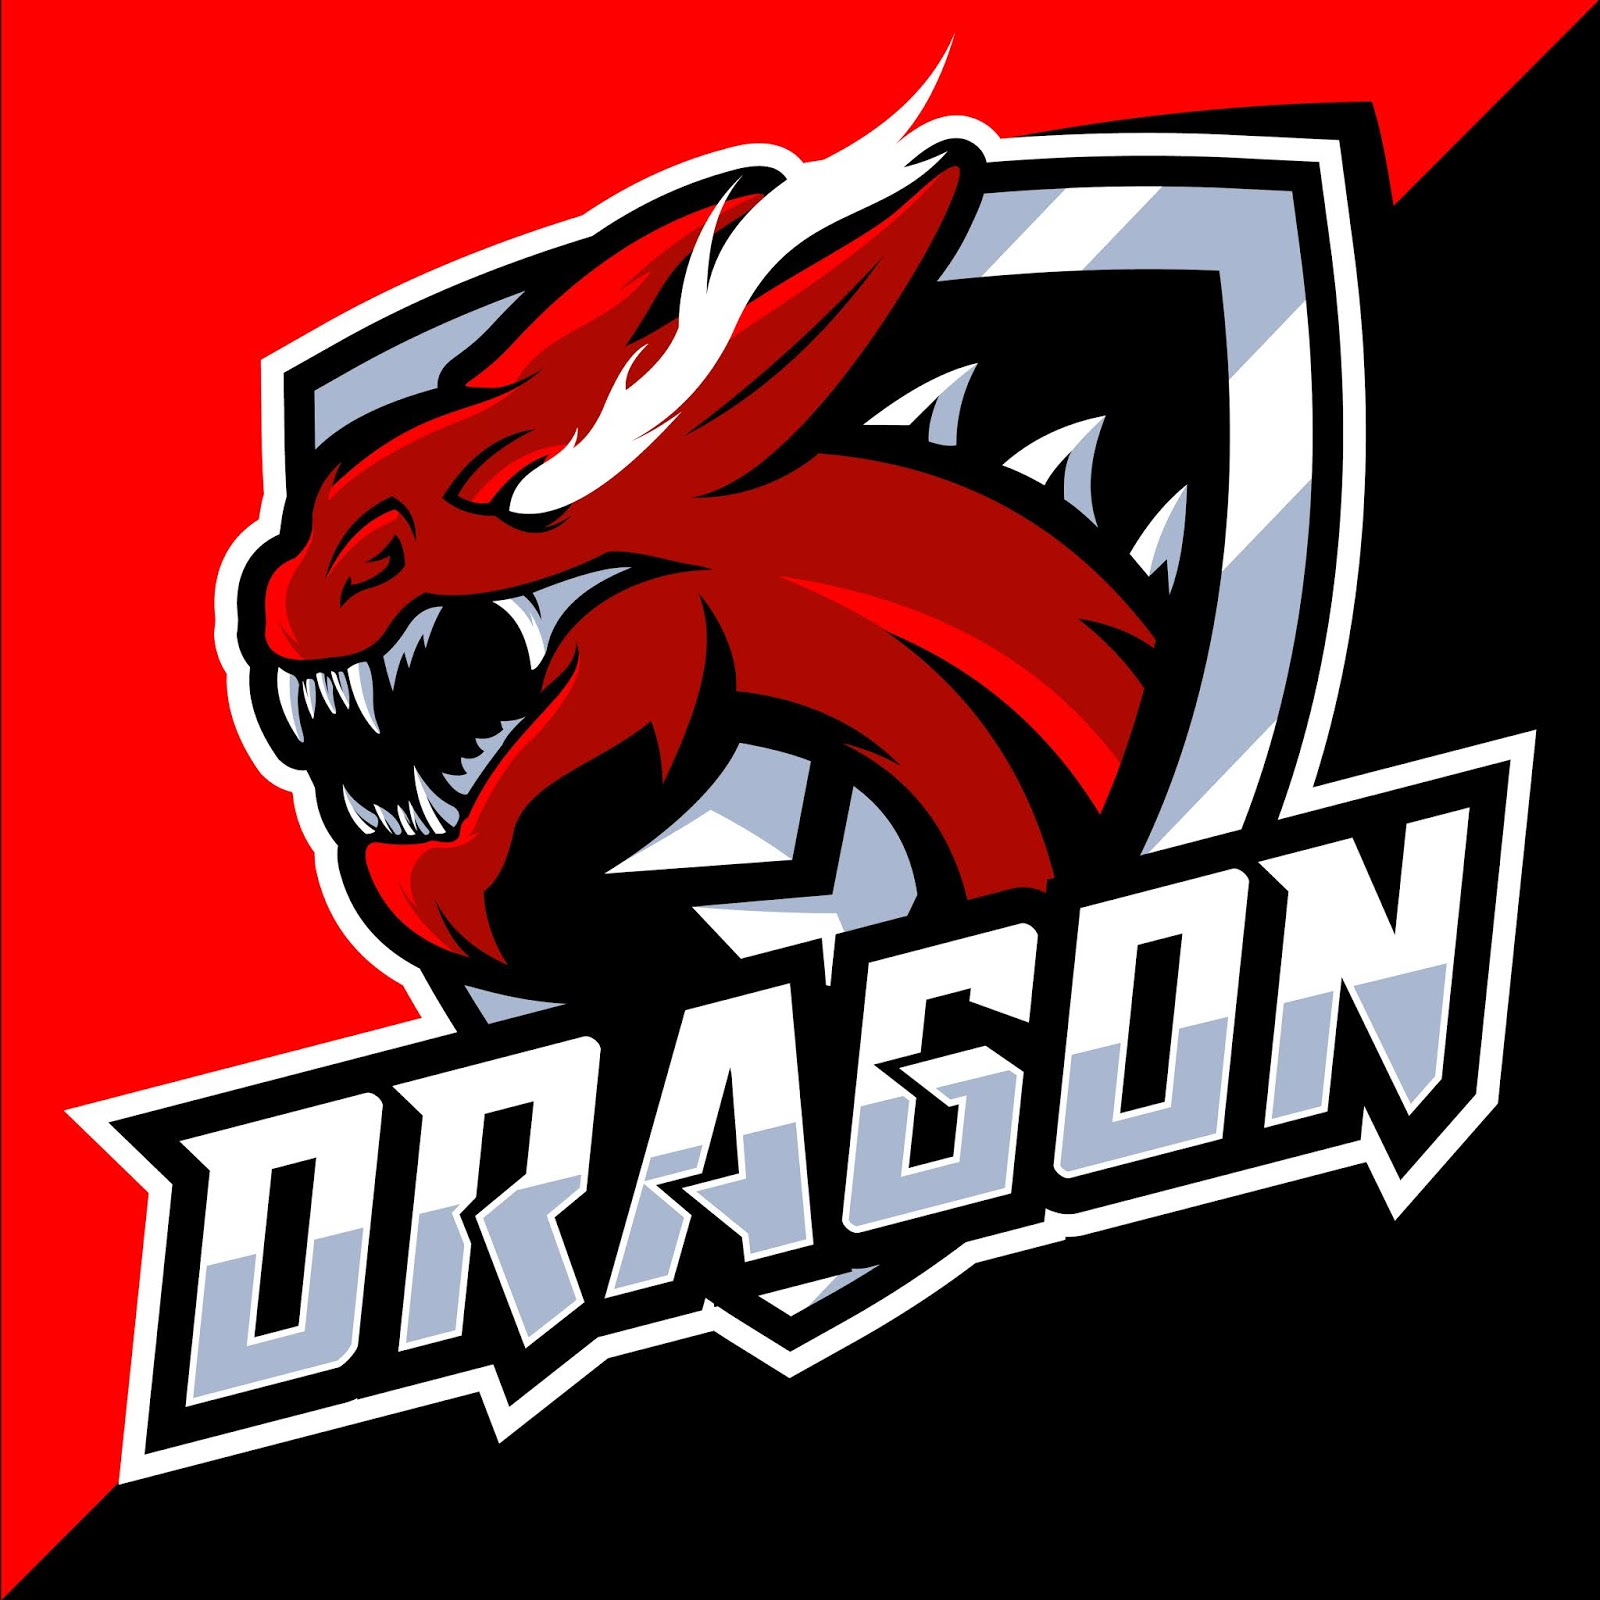 Red Dragon Head Esport Logo Free Download Vector CDR, AI, EPS and PNG Formats